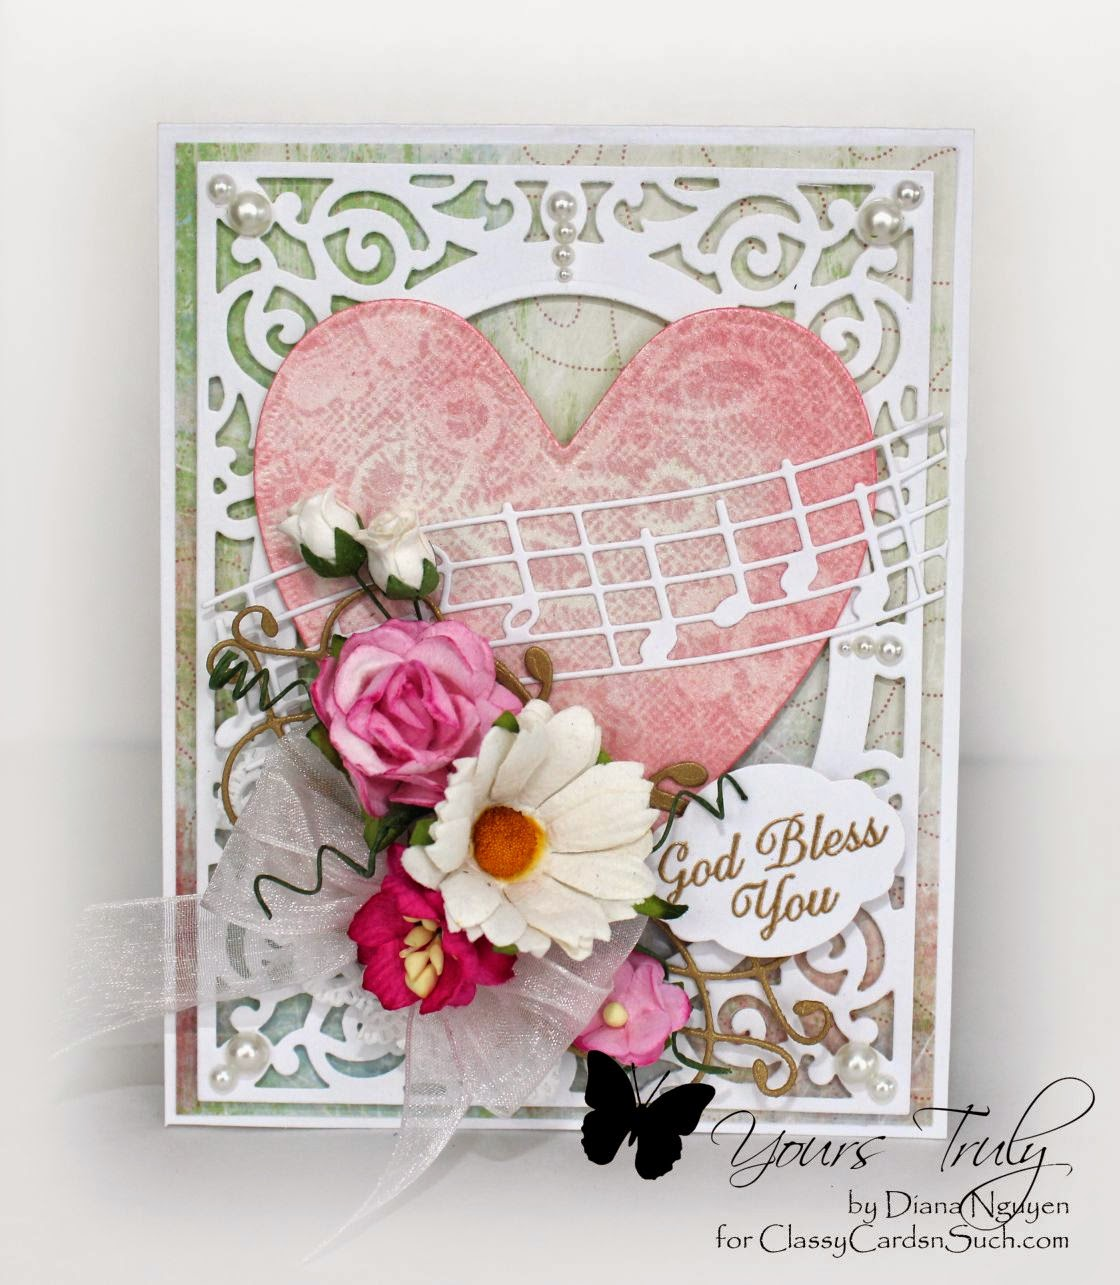 Diana Nguyen, Our Daily Bread Designs, music, Vintage Filigree Die, shabby chic, wild orchid flowers, Memory Box, Almira Flourish